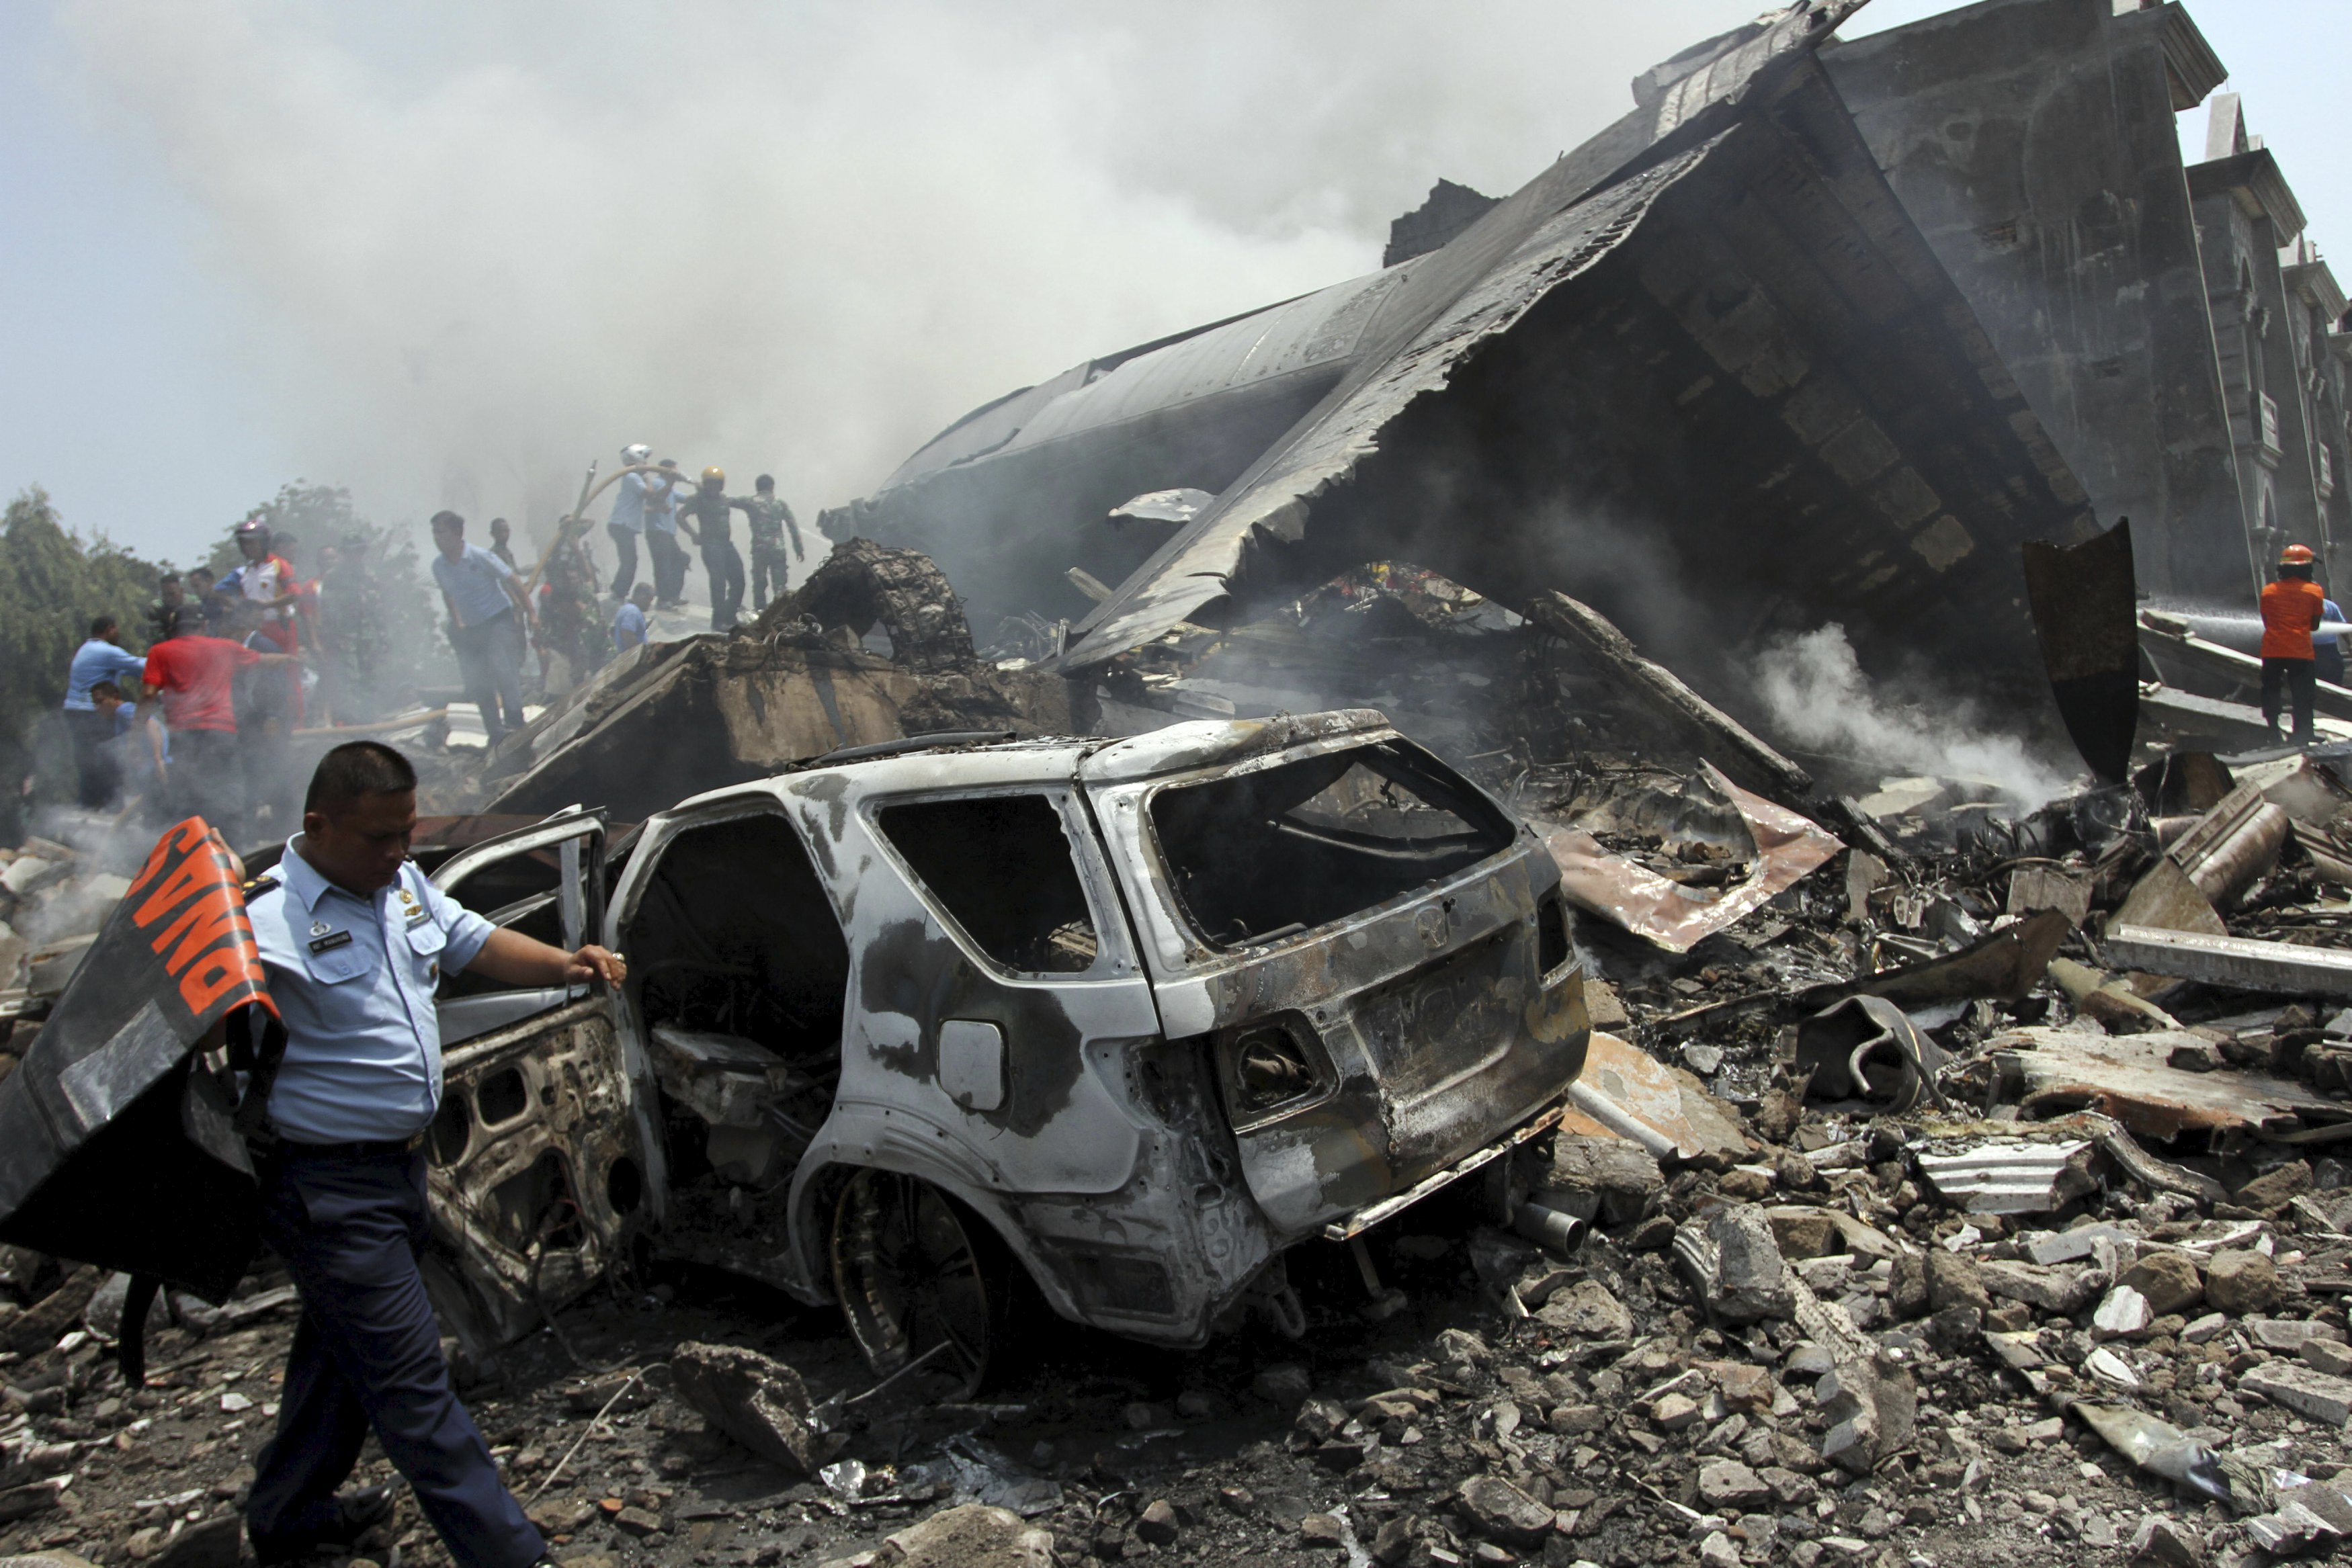 Over 100 feared dead after Indonesia military plane crashes